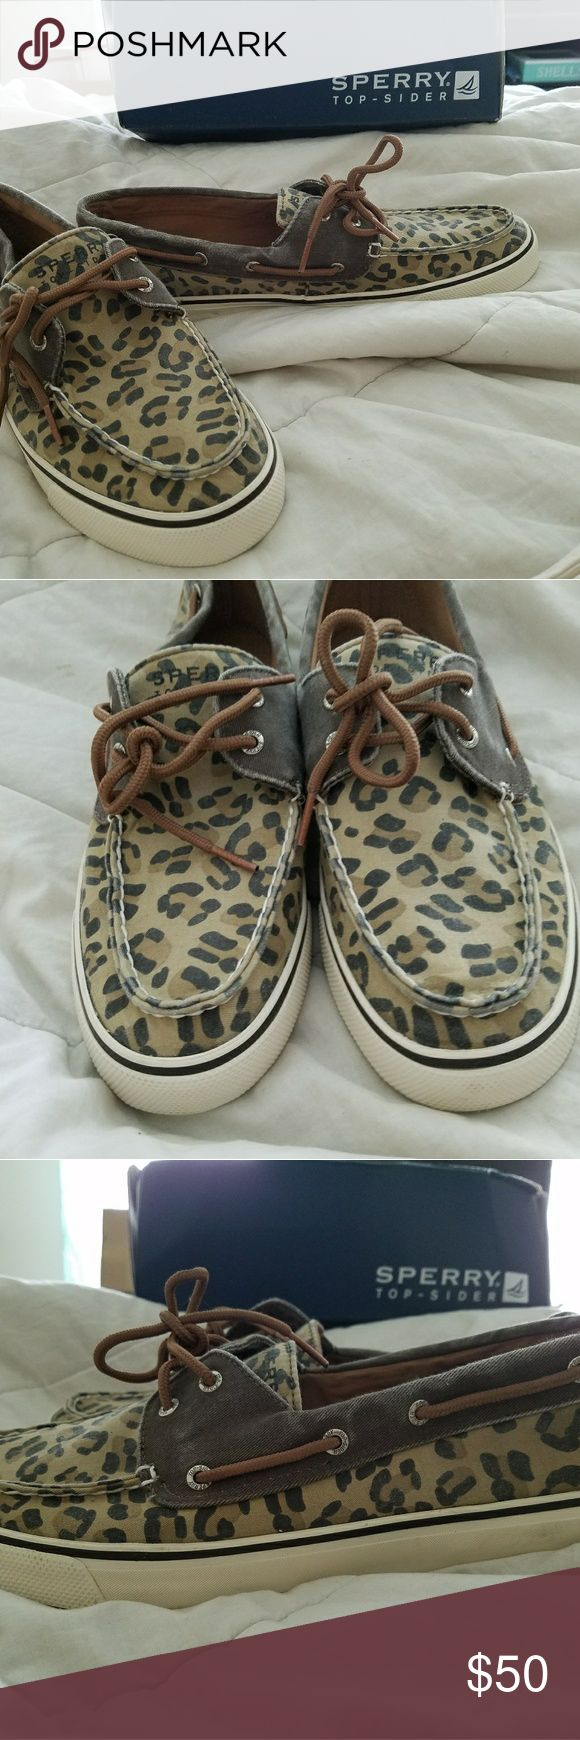 Leopard Sperry Top Siders New In Box! Tan brown and black leopard print Sperrys  super cute and brand new! Sperry Top-Sider Shoes